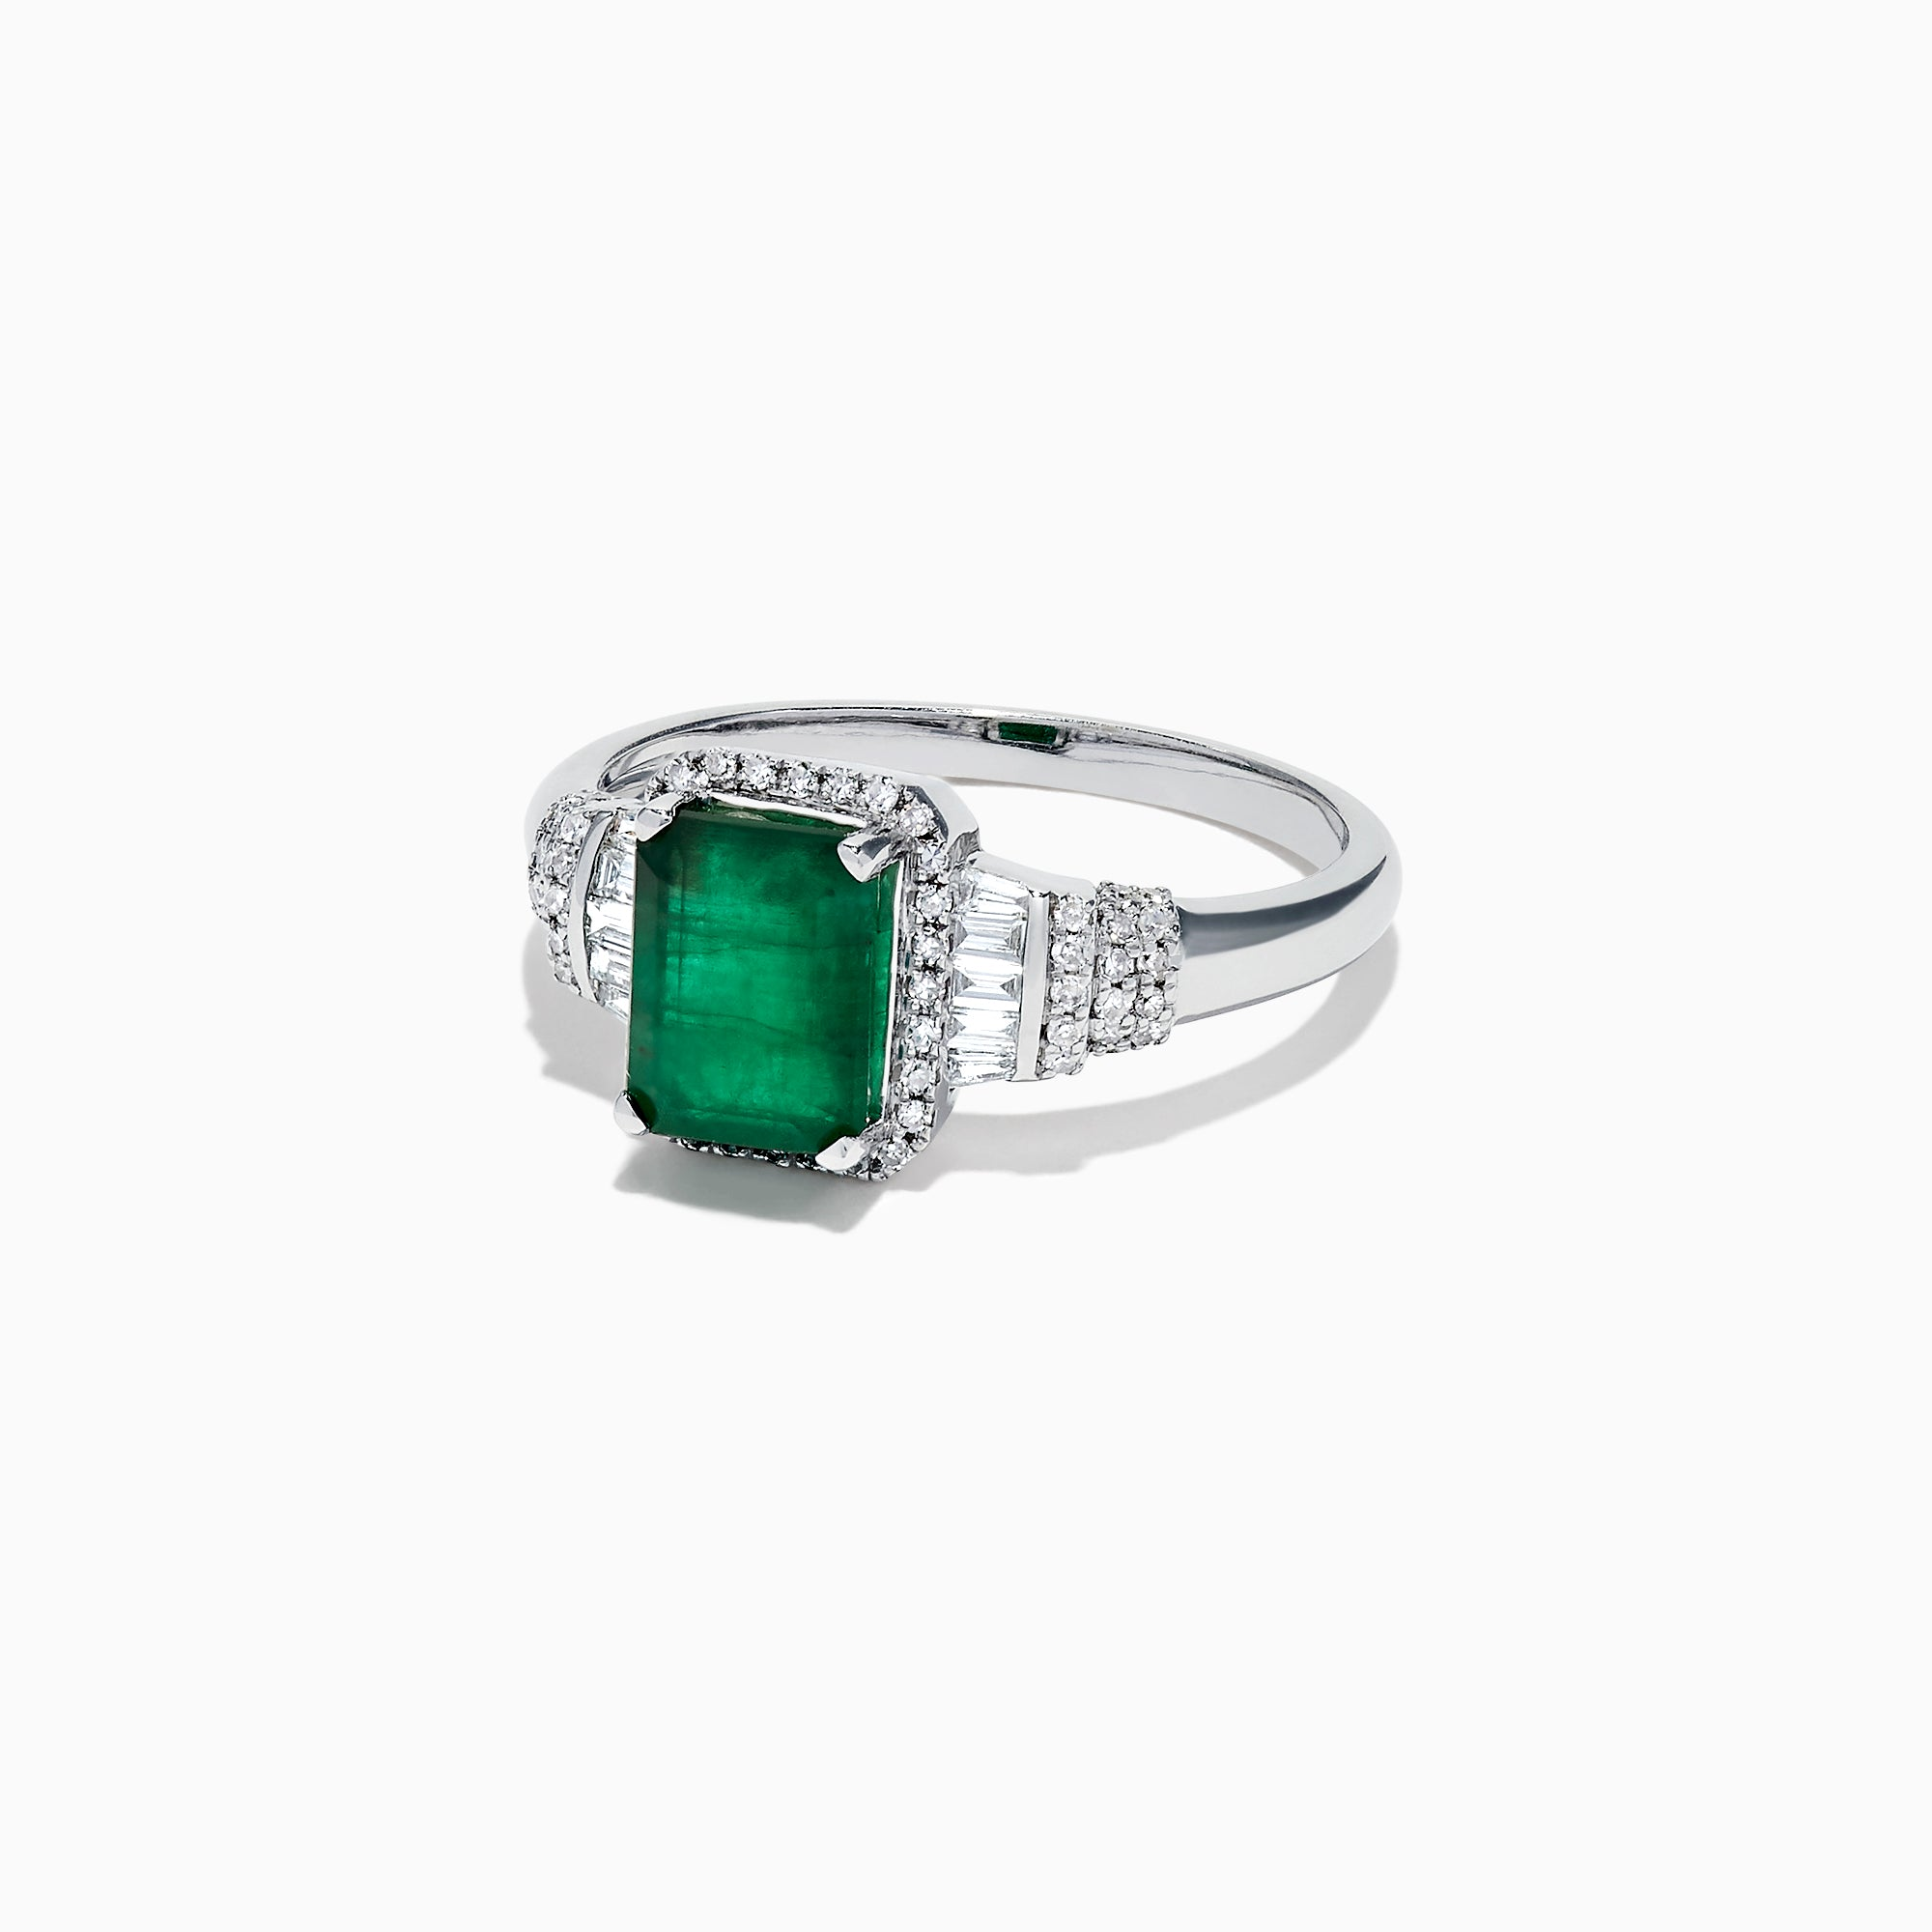 Effy Brasilica 14K White Gold Emerald and Diamond Ring, 1.73 TCW